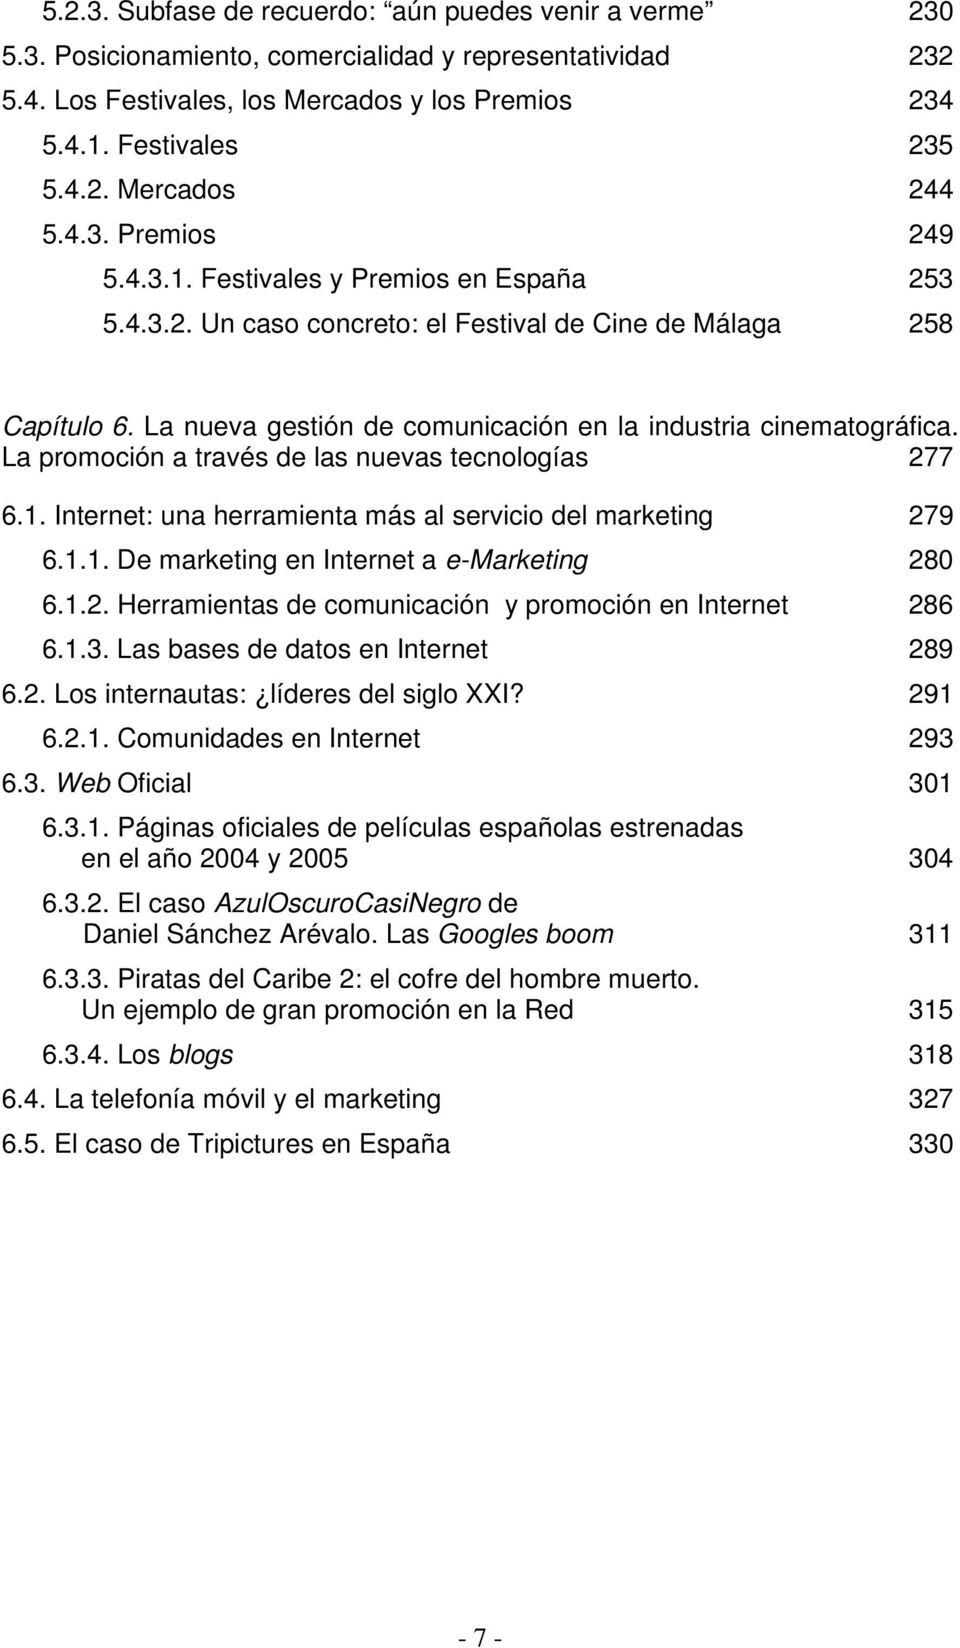 La promoción a través de las nuevas tecnologías 277 6.1. Internet: una herramienta más al servicio del marketing 279 6.1.1. De marketing en Internet a e-marketing 280 6.1.2. Herramientas de comunicación y promoción en Internet 286 6.